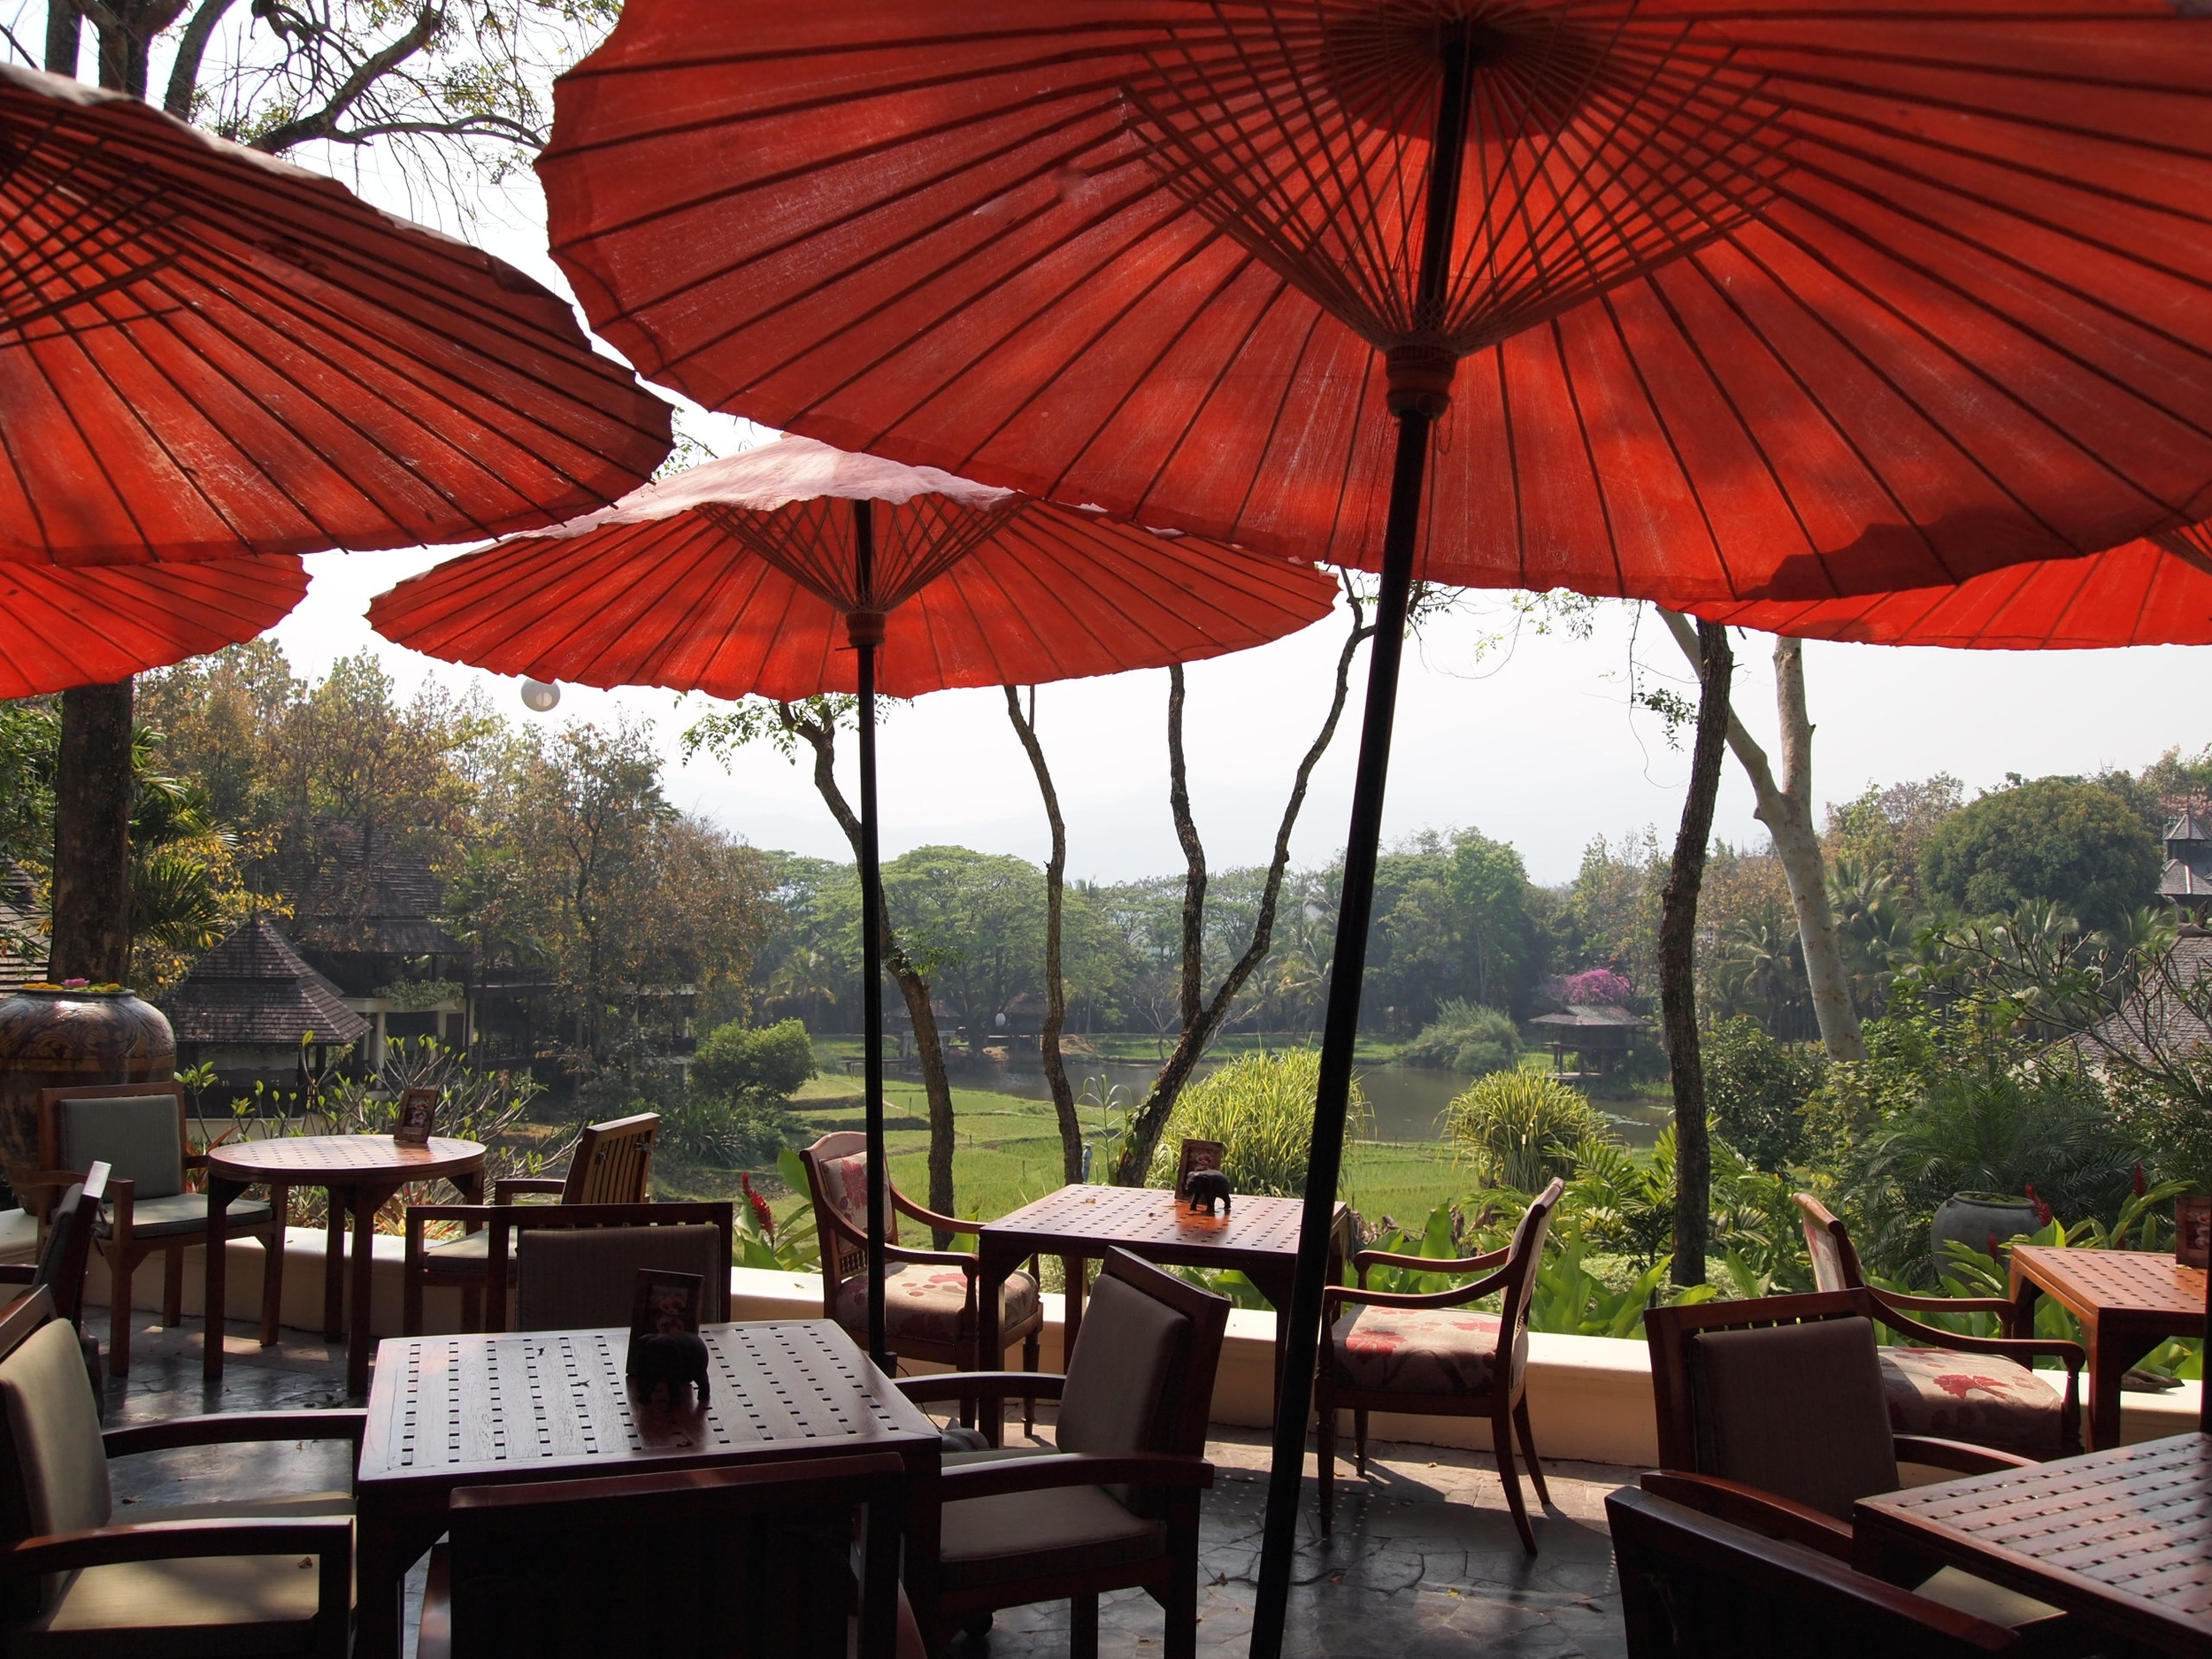 The dining scene at Sala Mae Rim, one of four resort restaurants